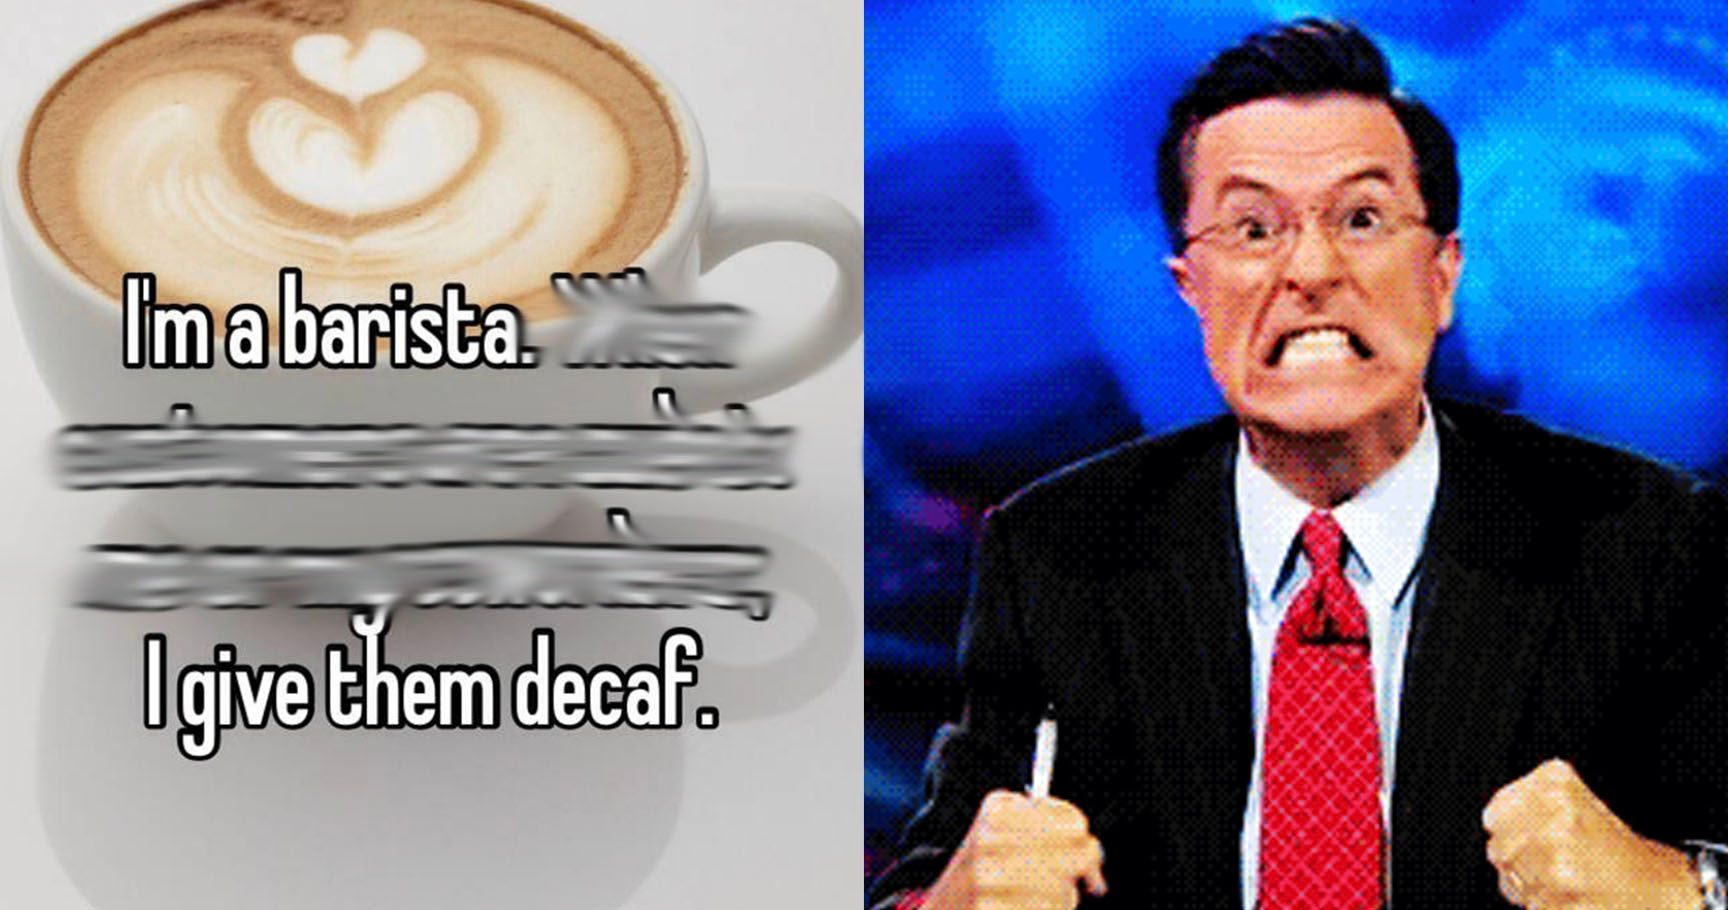 15 Savage Barista Rants That Are Too Funny Not To Share